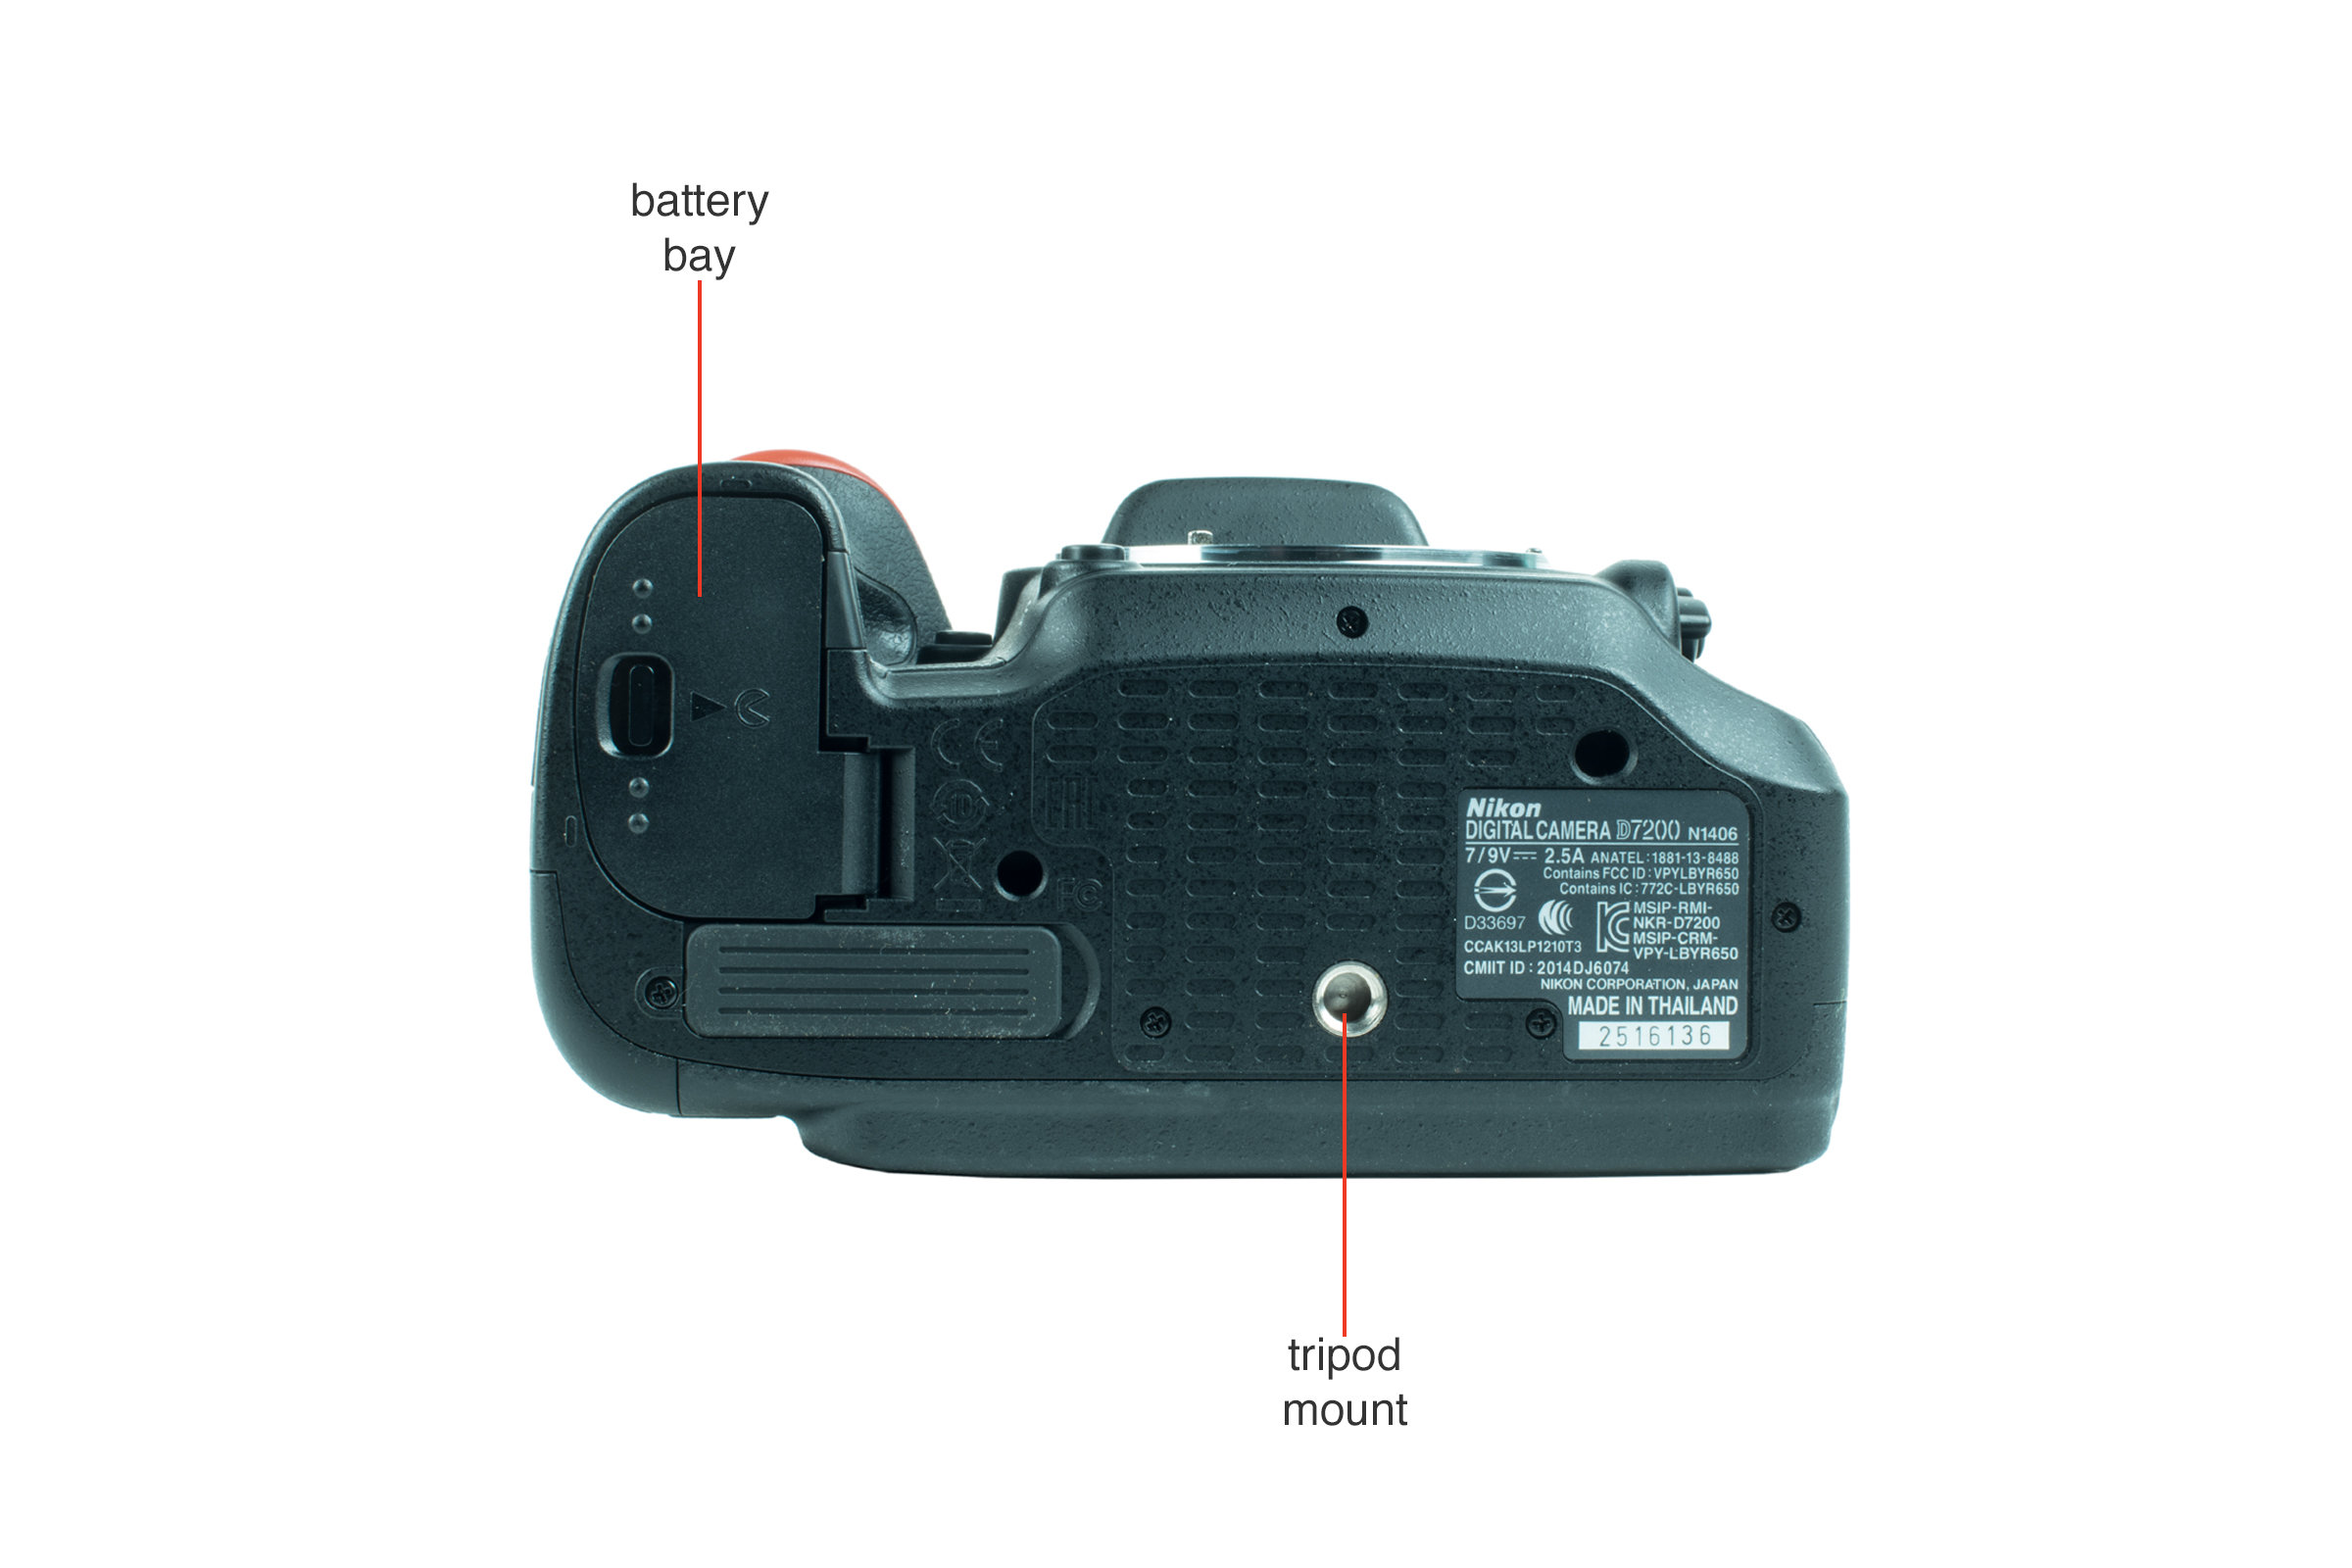 Bottom view of the Nikon D7200.